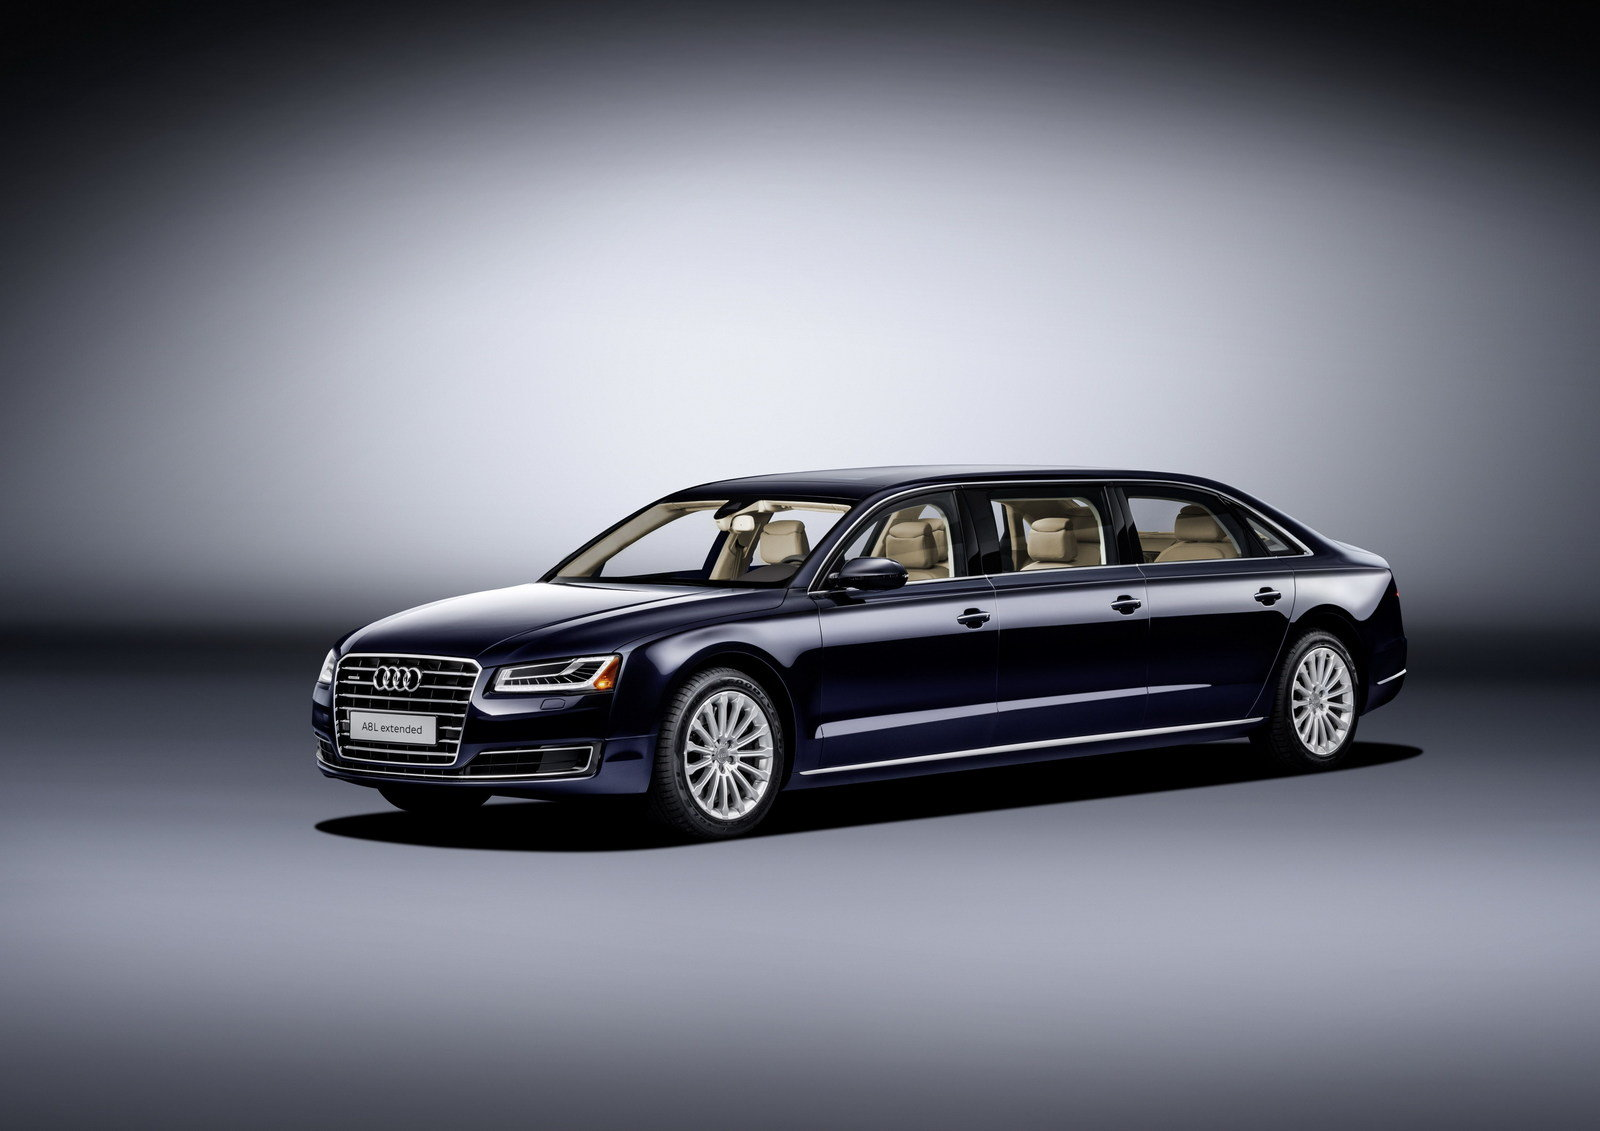 2017 audi a8l extended picture 672157 car review top. Black Bedroom Furniture Sets. Home Design Ideas